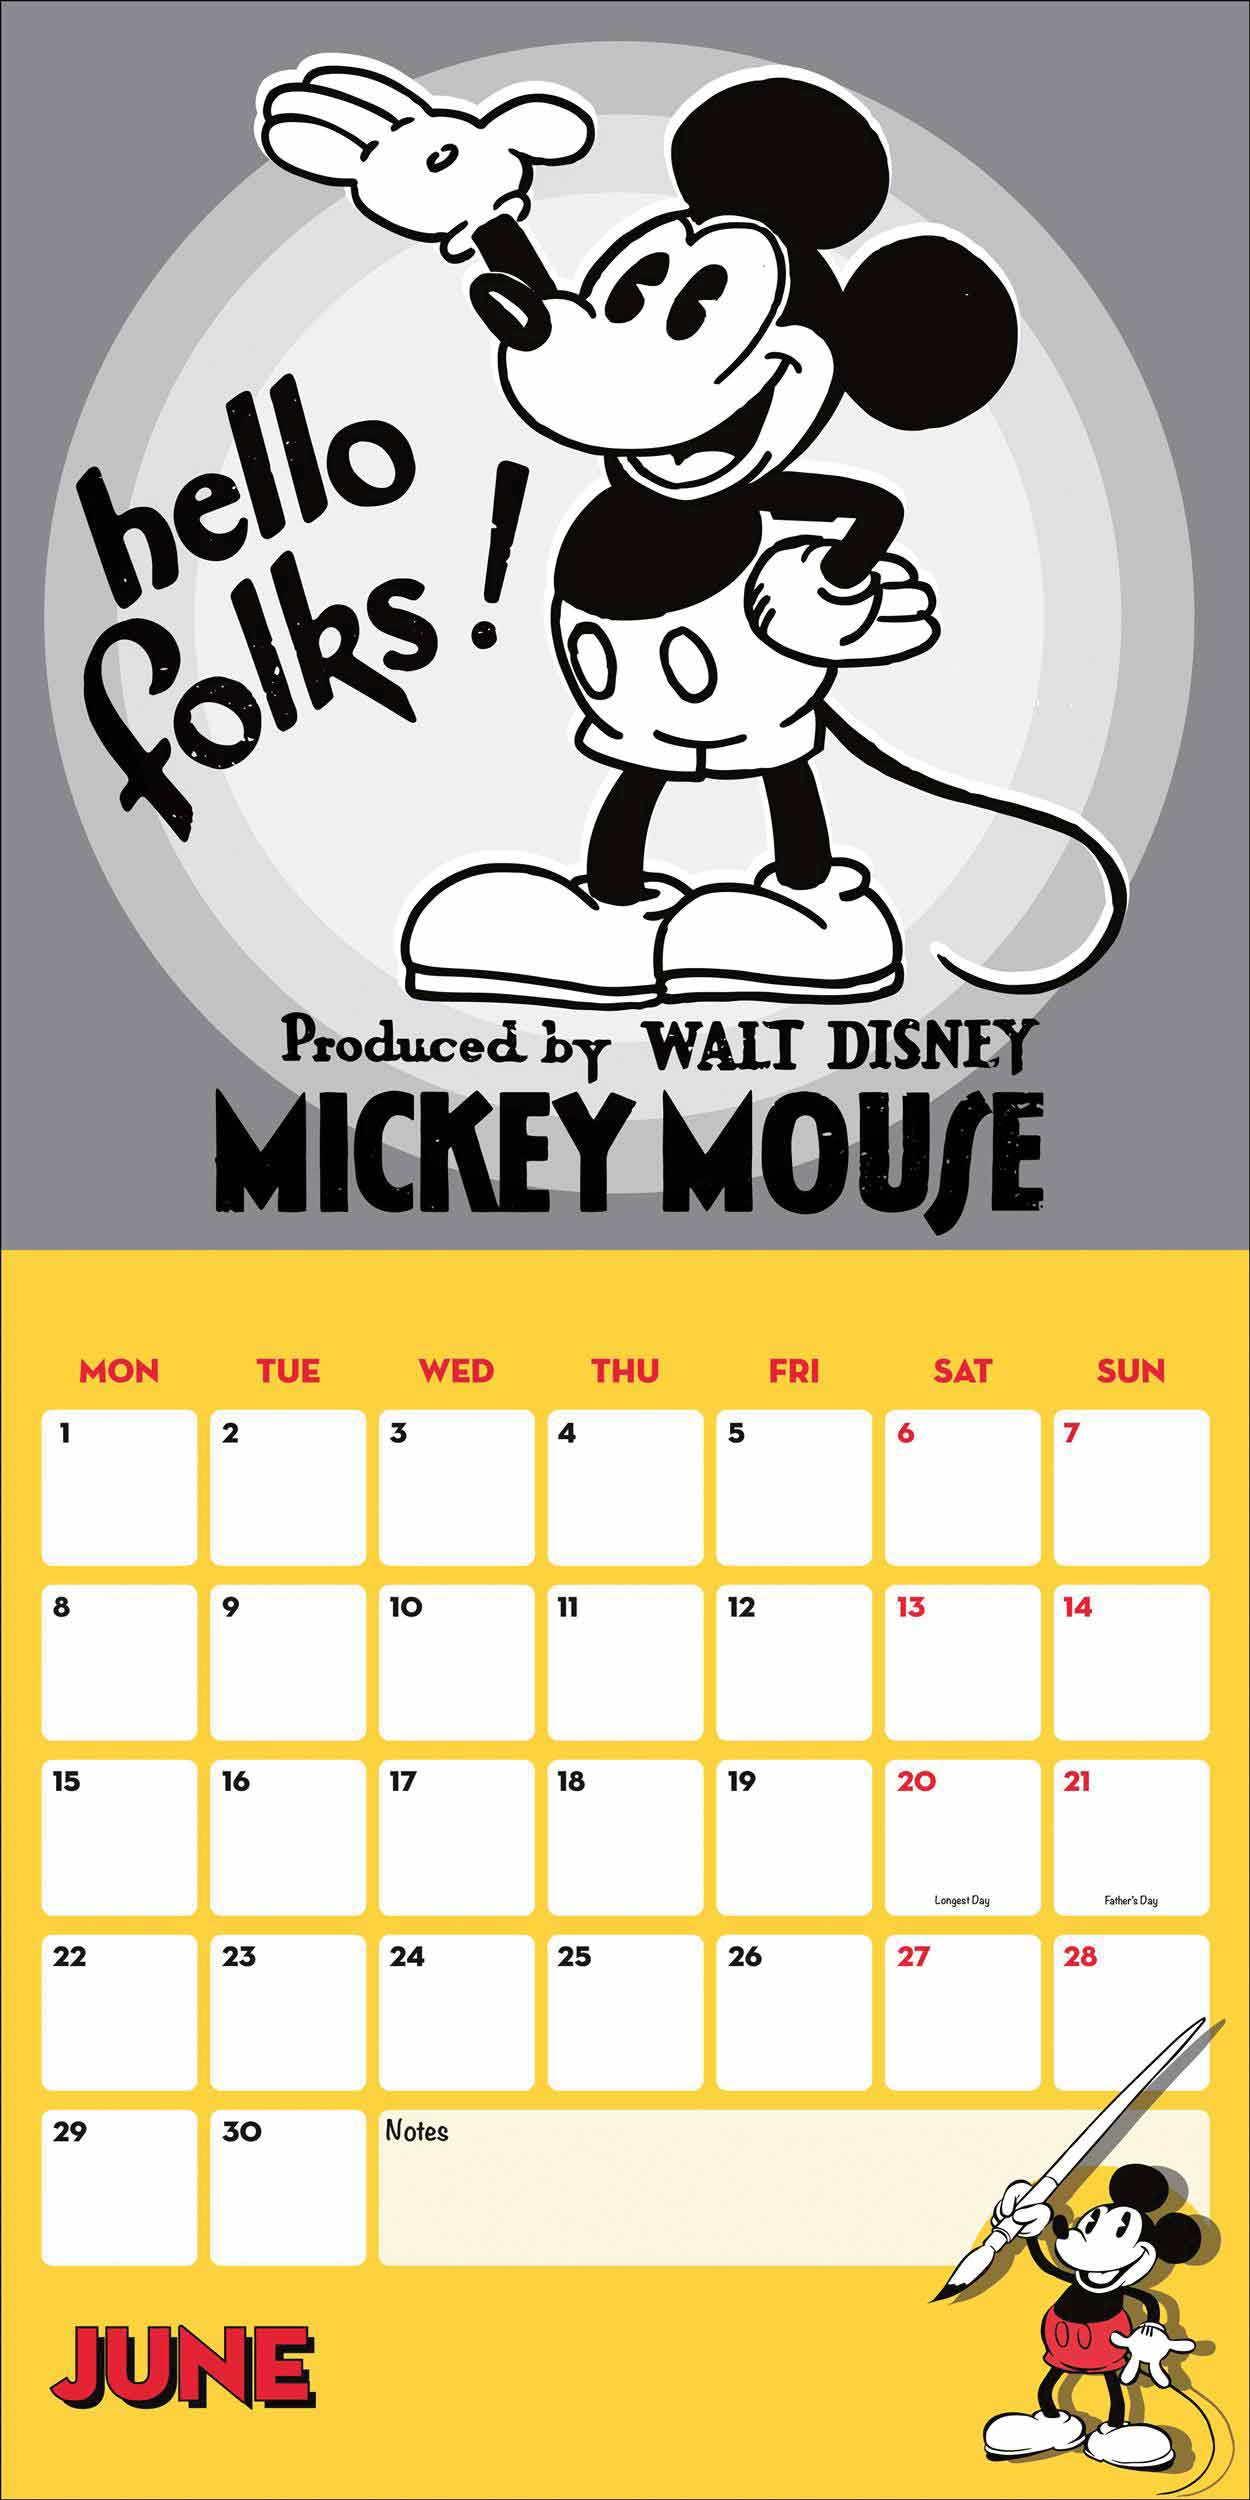 Disney, Mickey Mouse Official Calendar 2020 - Calendar Club Uk